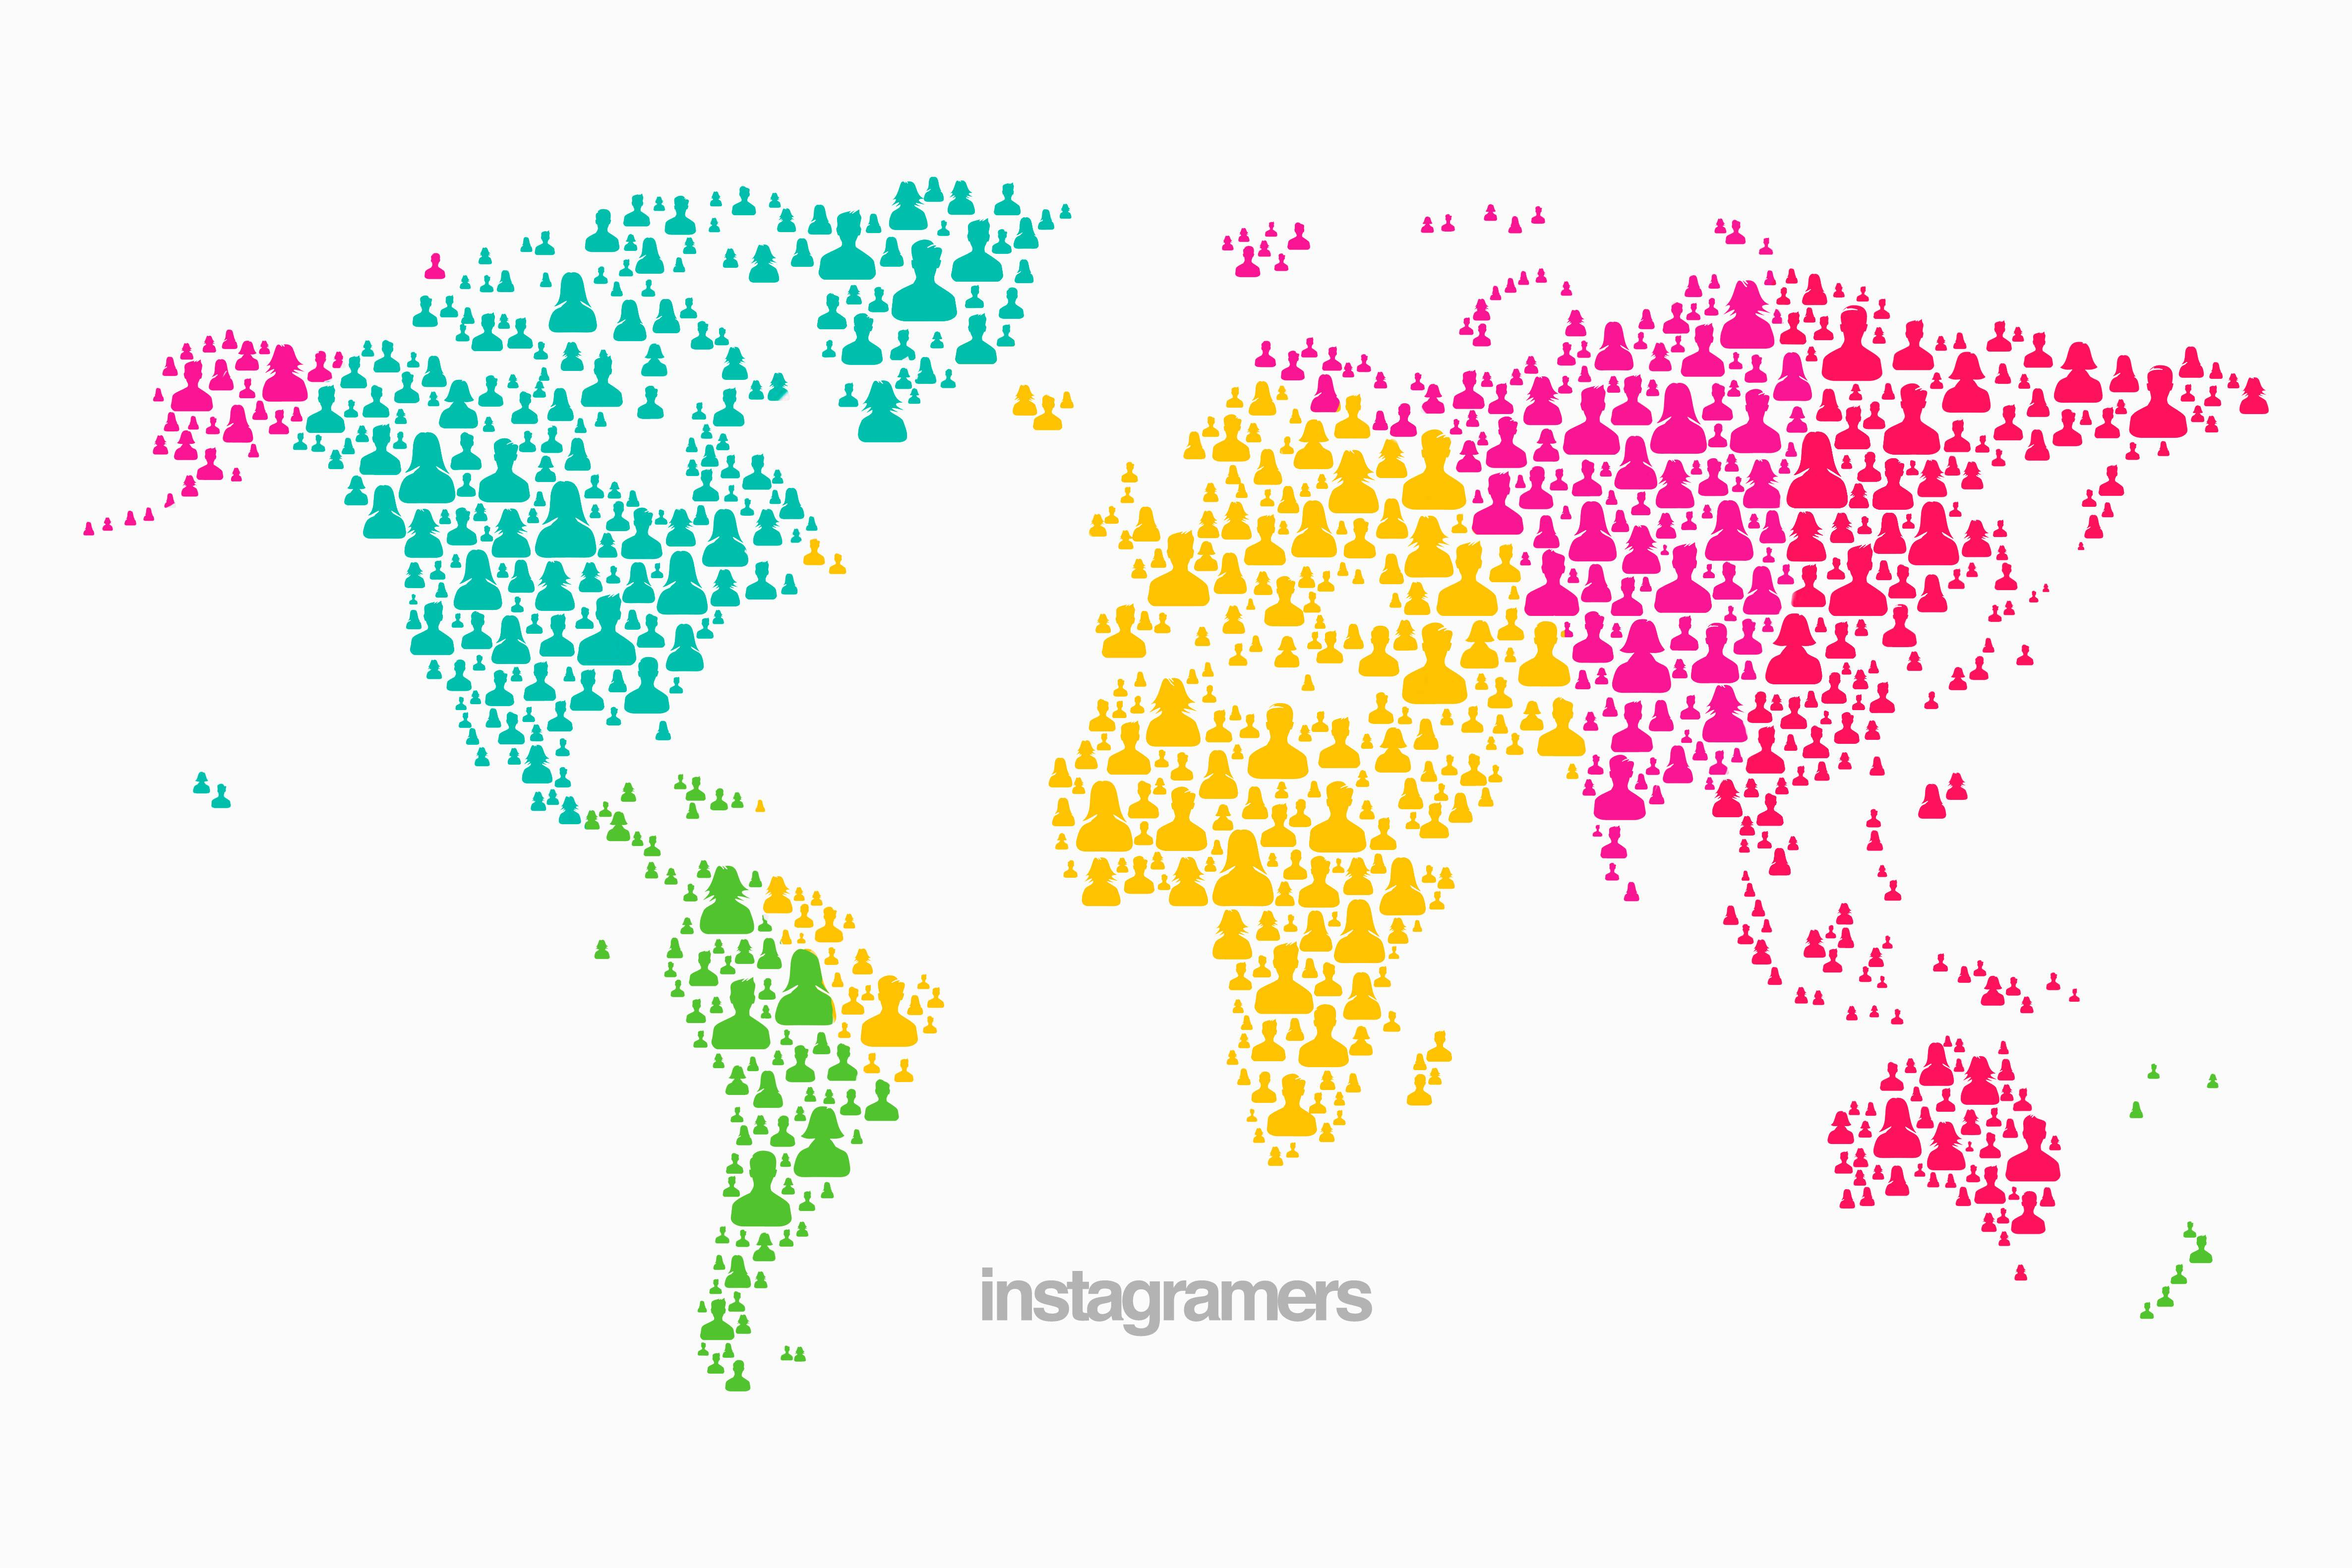 Instagramers Cities Groups